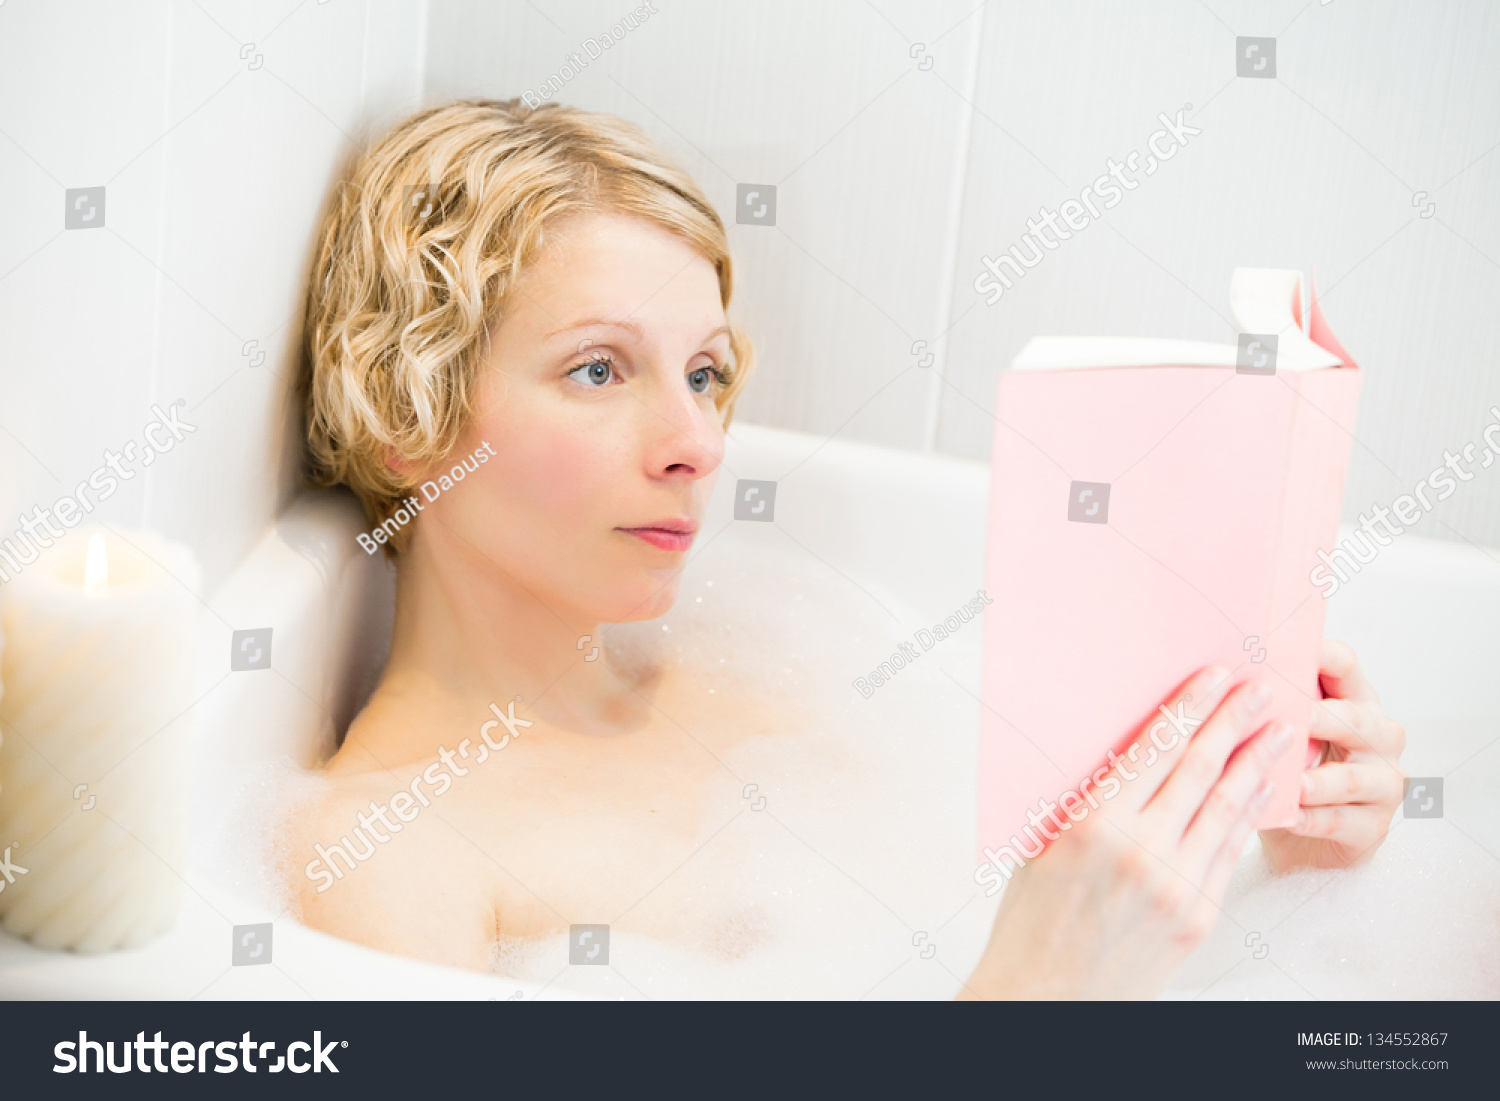 Young Woman Relaxing Reading Bath Stock Photo 134552867 - Shutterstock